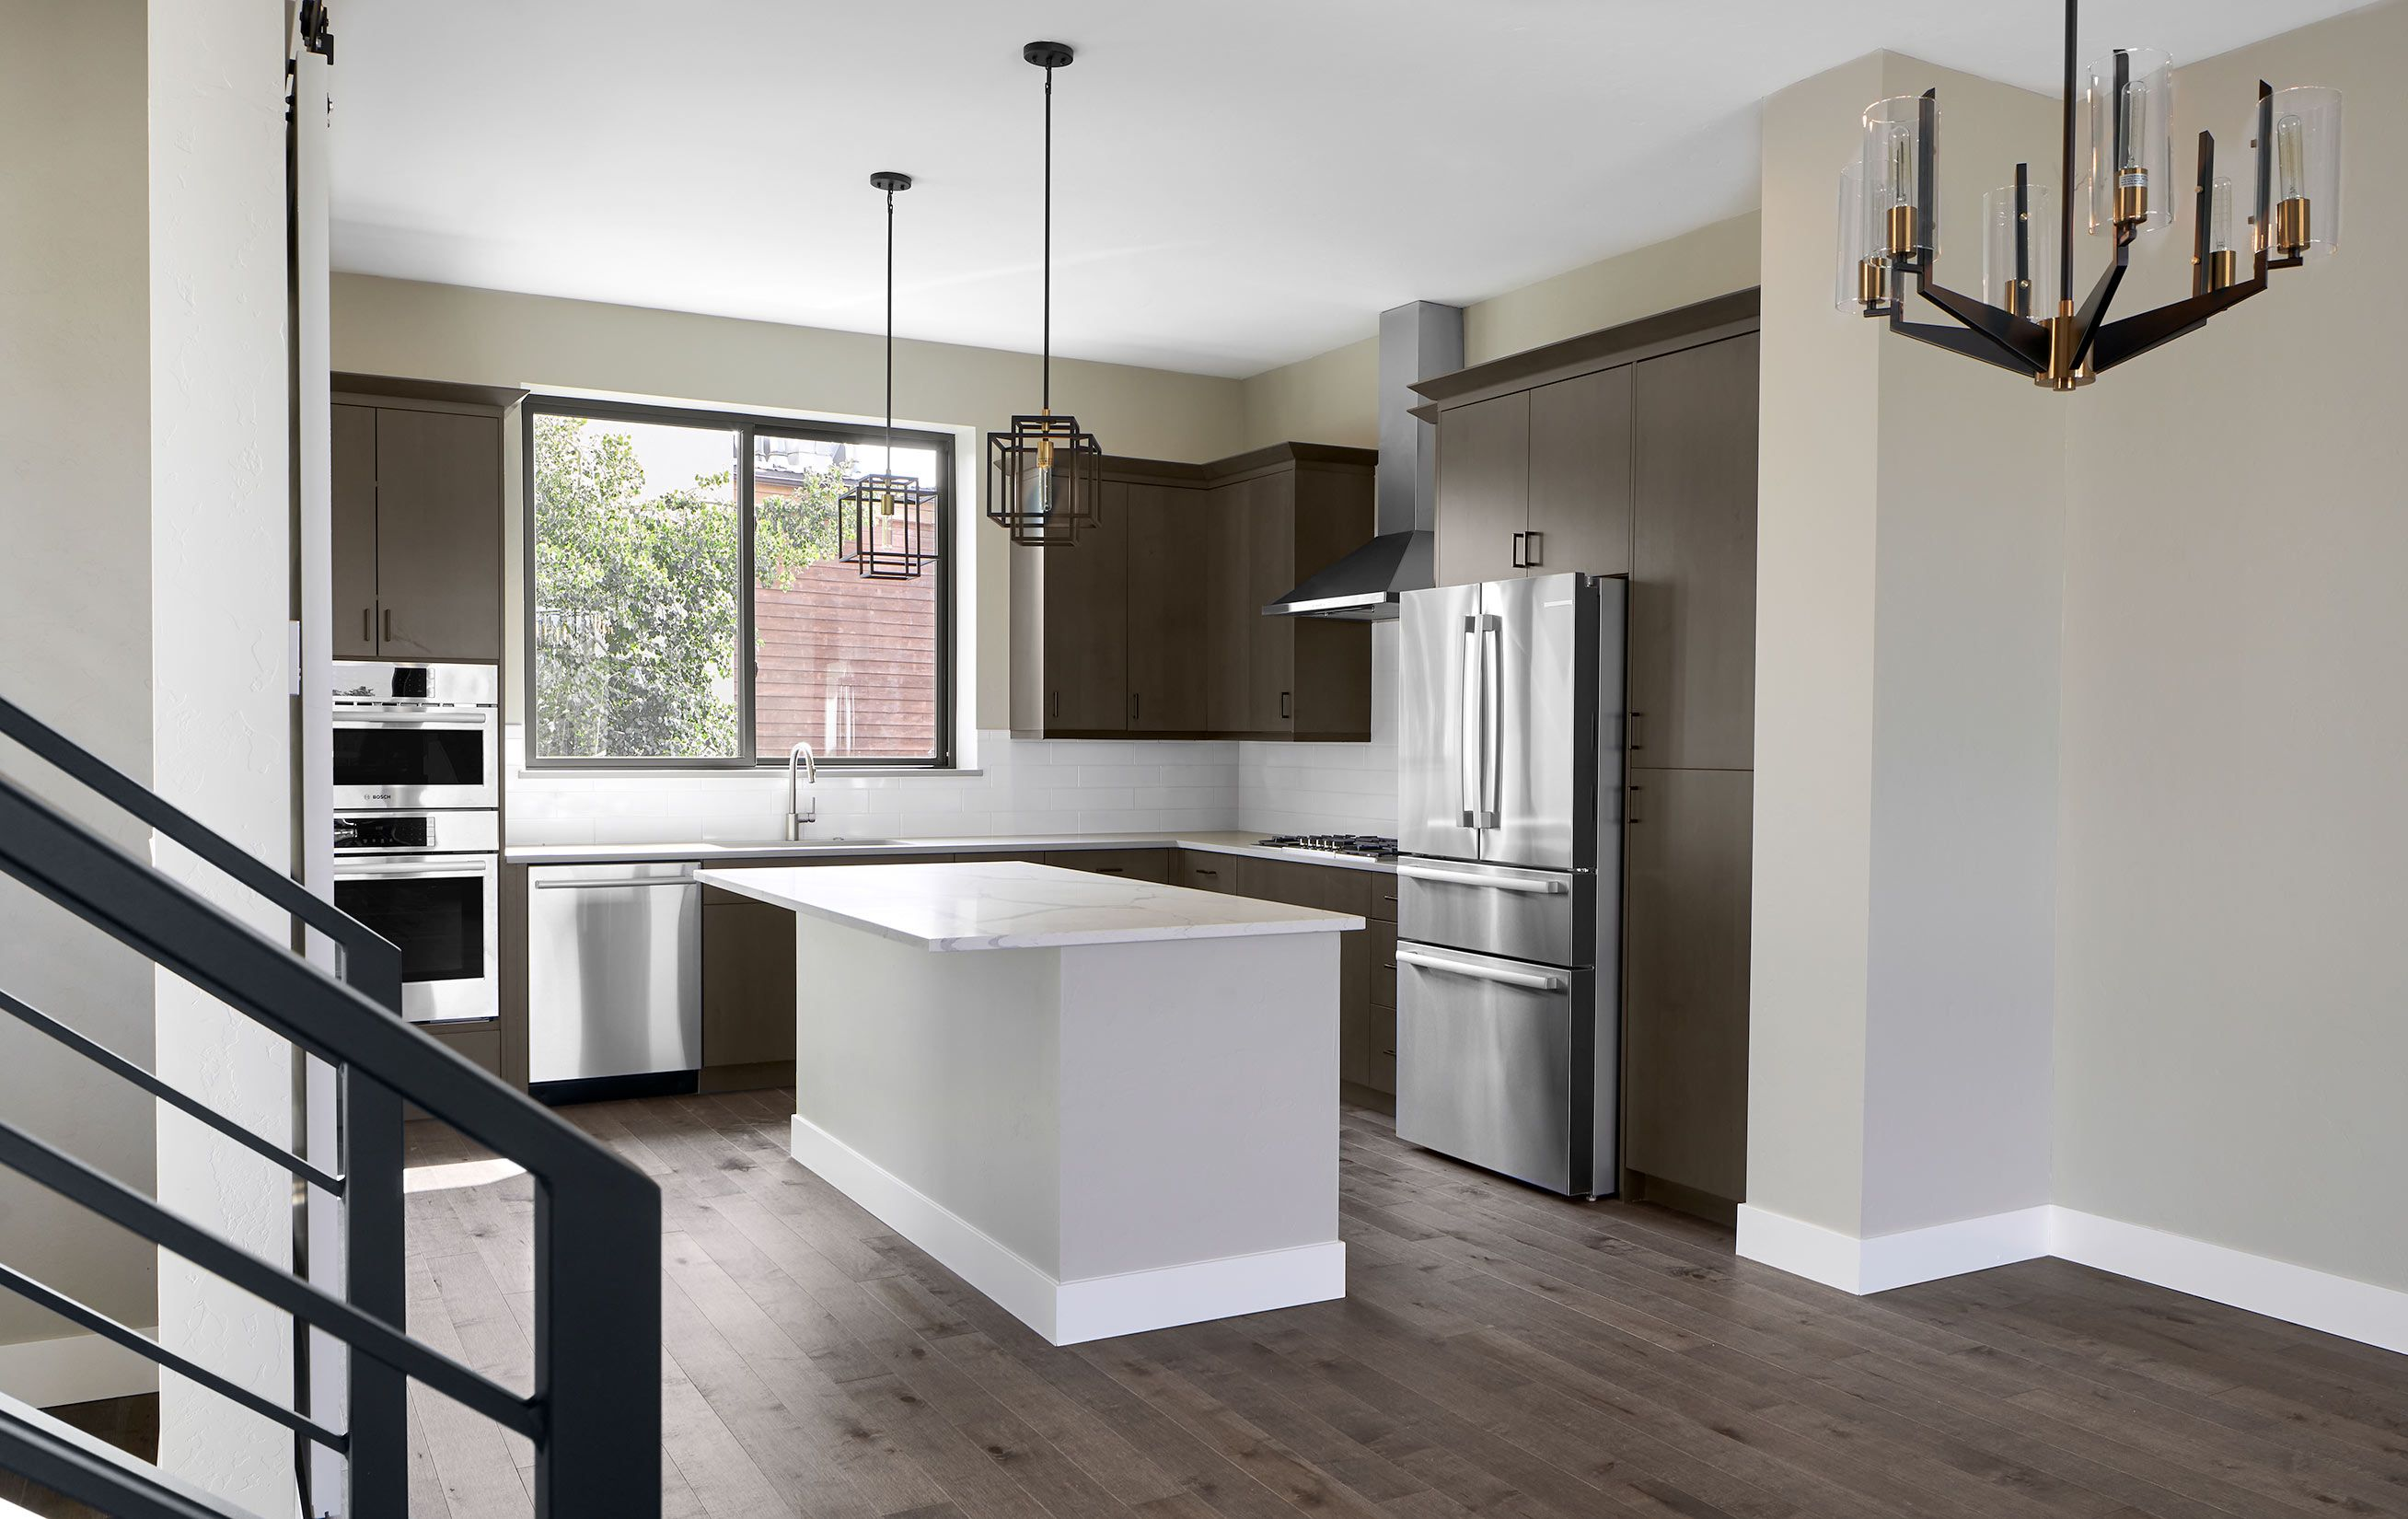 Kitchen featured in the RVC Plan B townhome By Koelbel Mountain Communities in Boulder-Longmont, CO